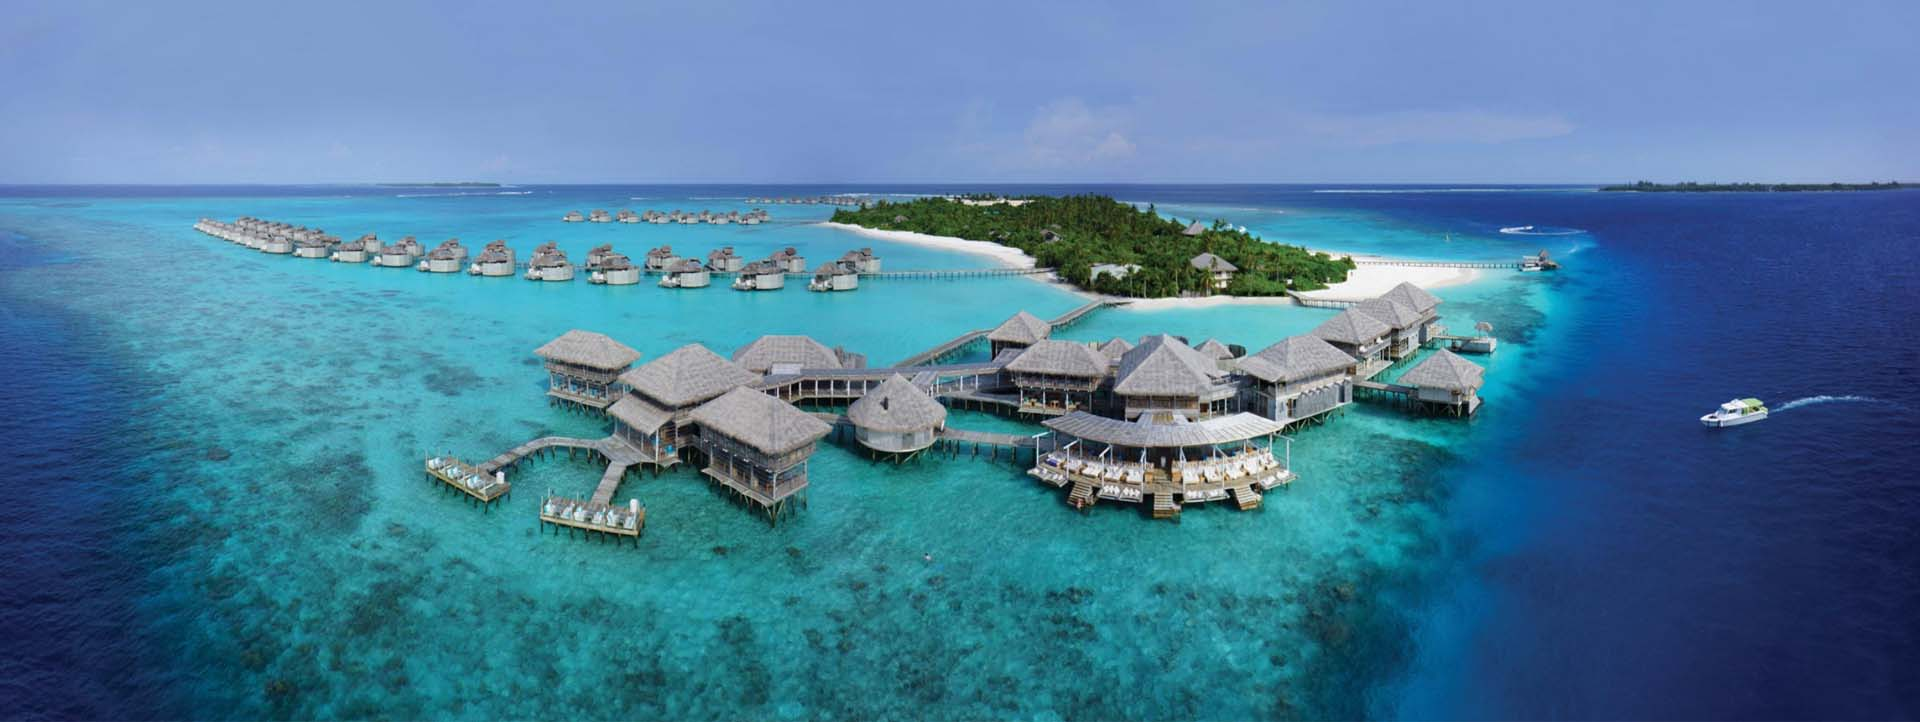 MALDIVES HOLIDAY SPECIALS LAMU SIX SENSES